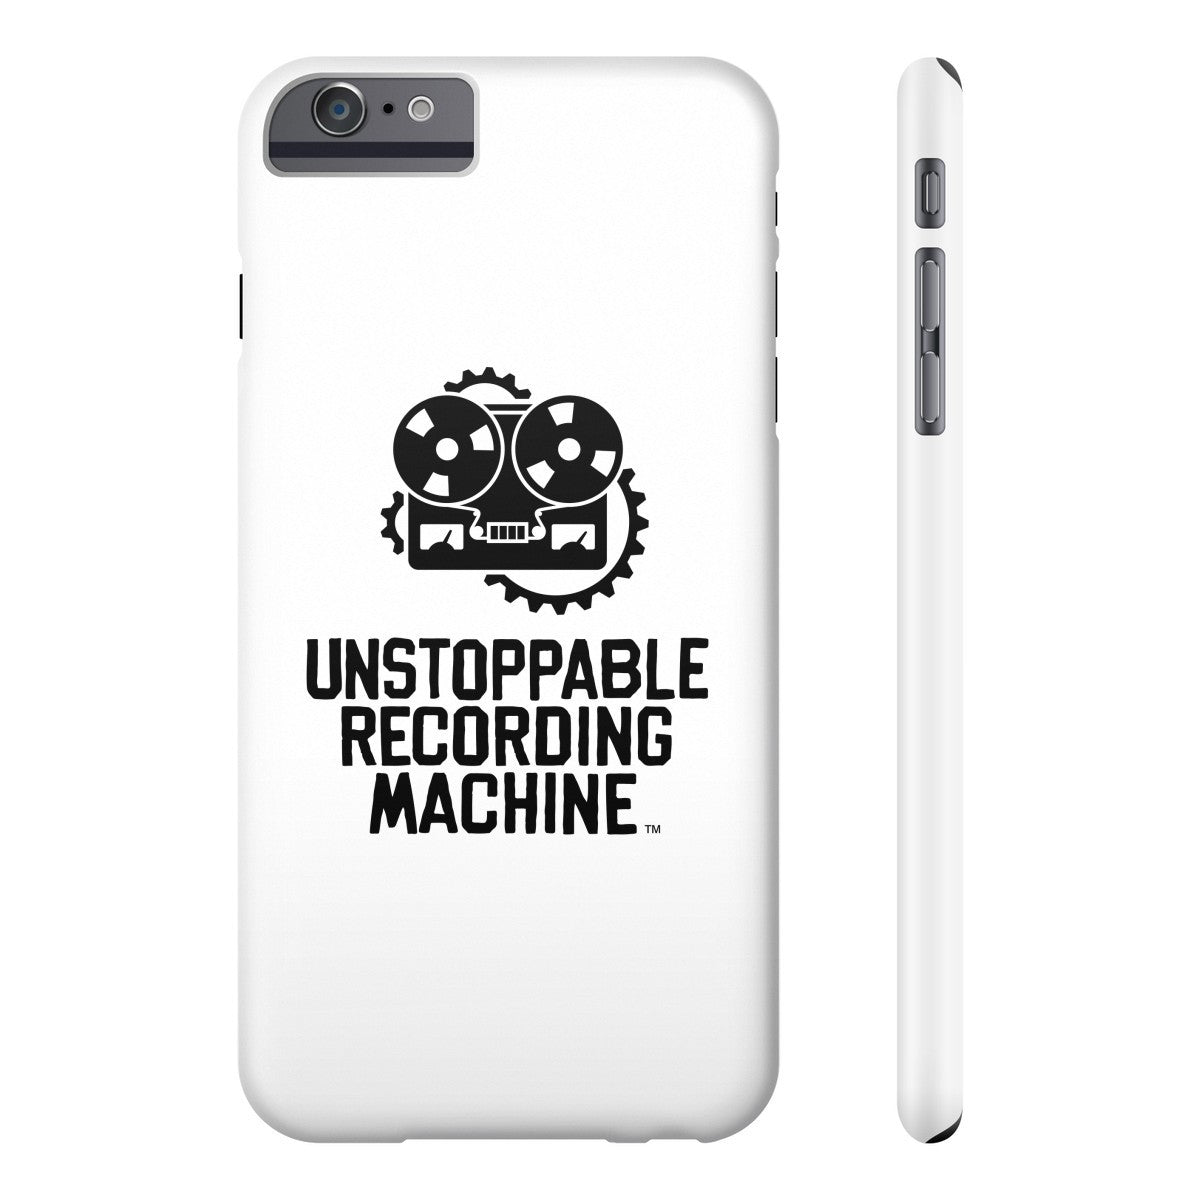 URM Phone Case, White w/ Black Logo